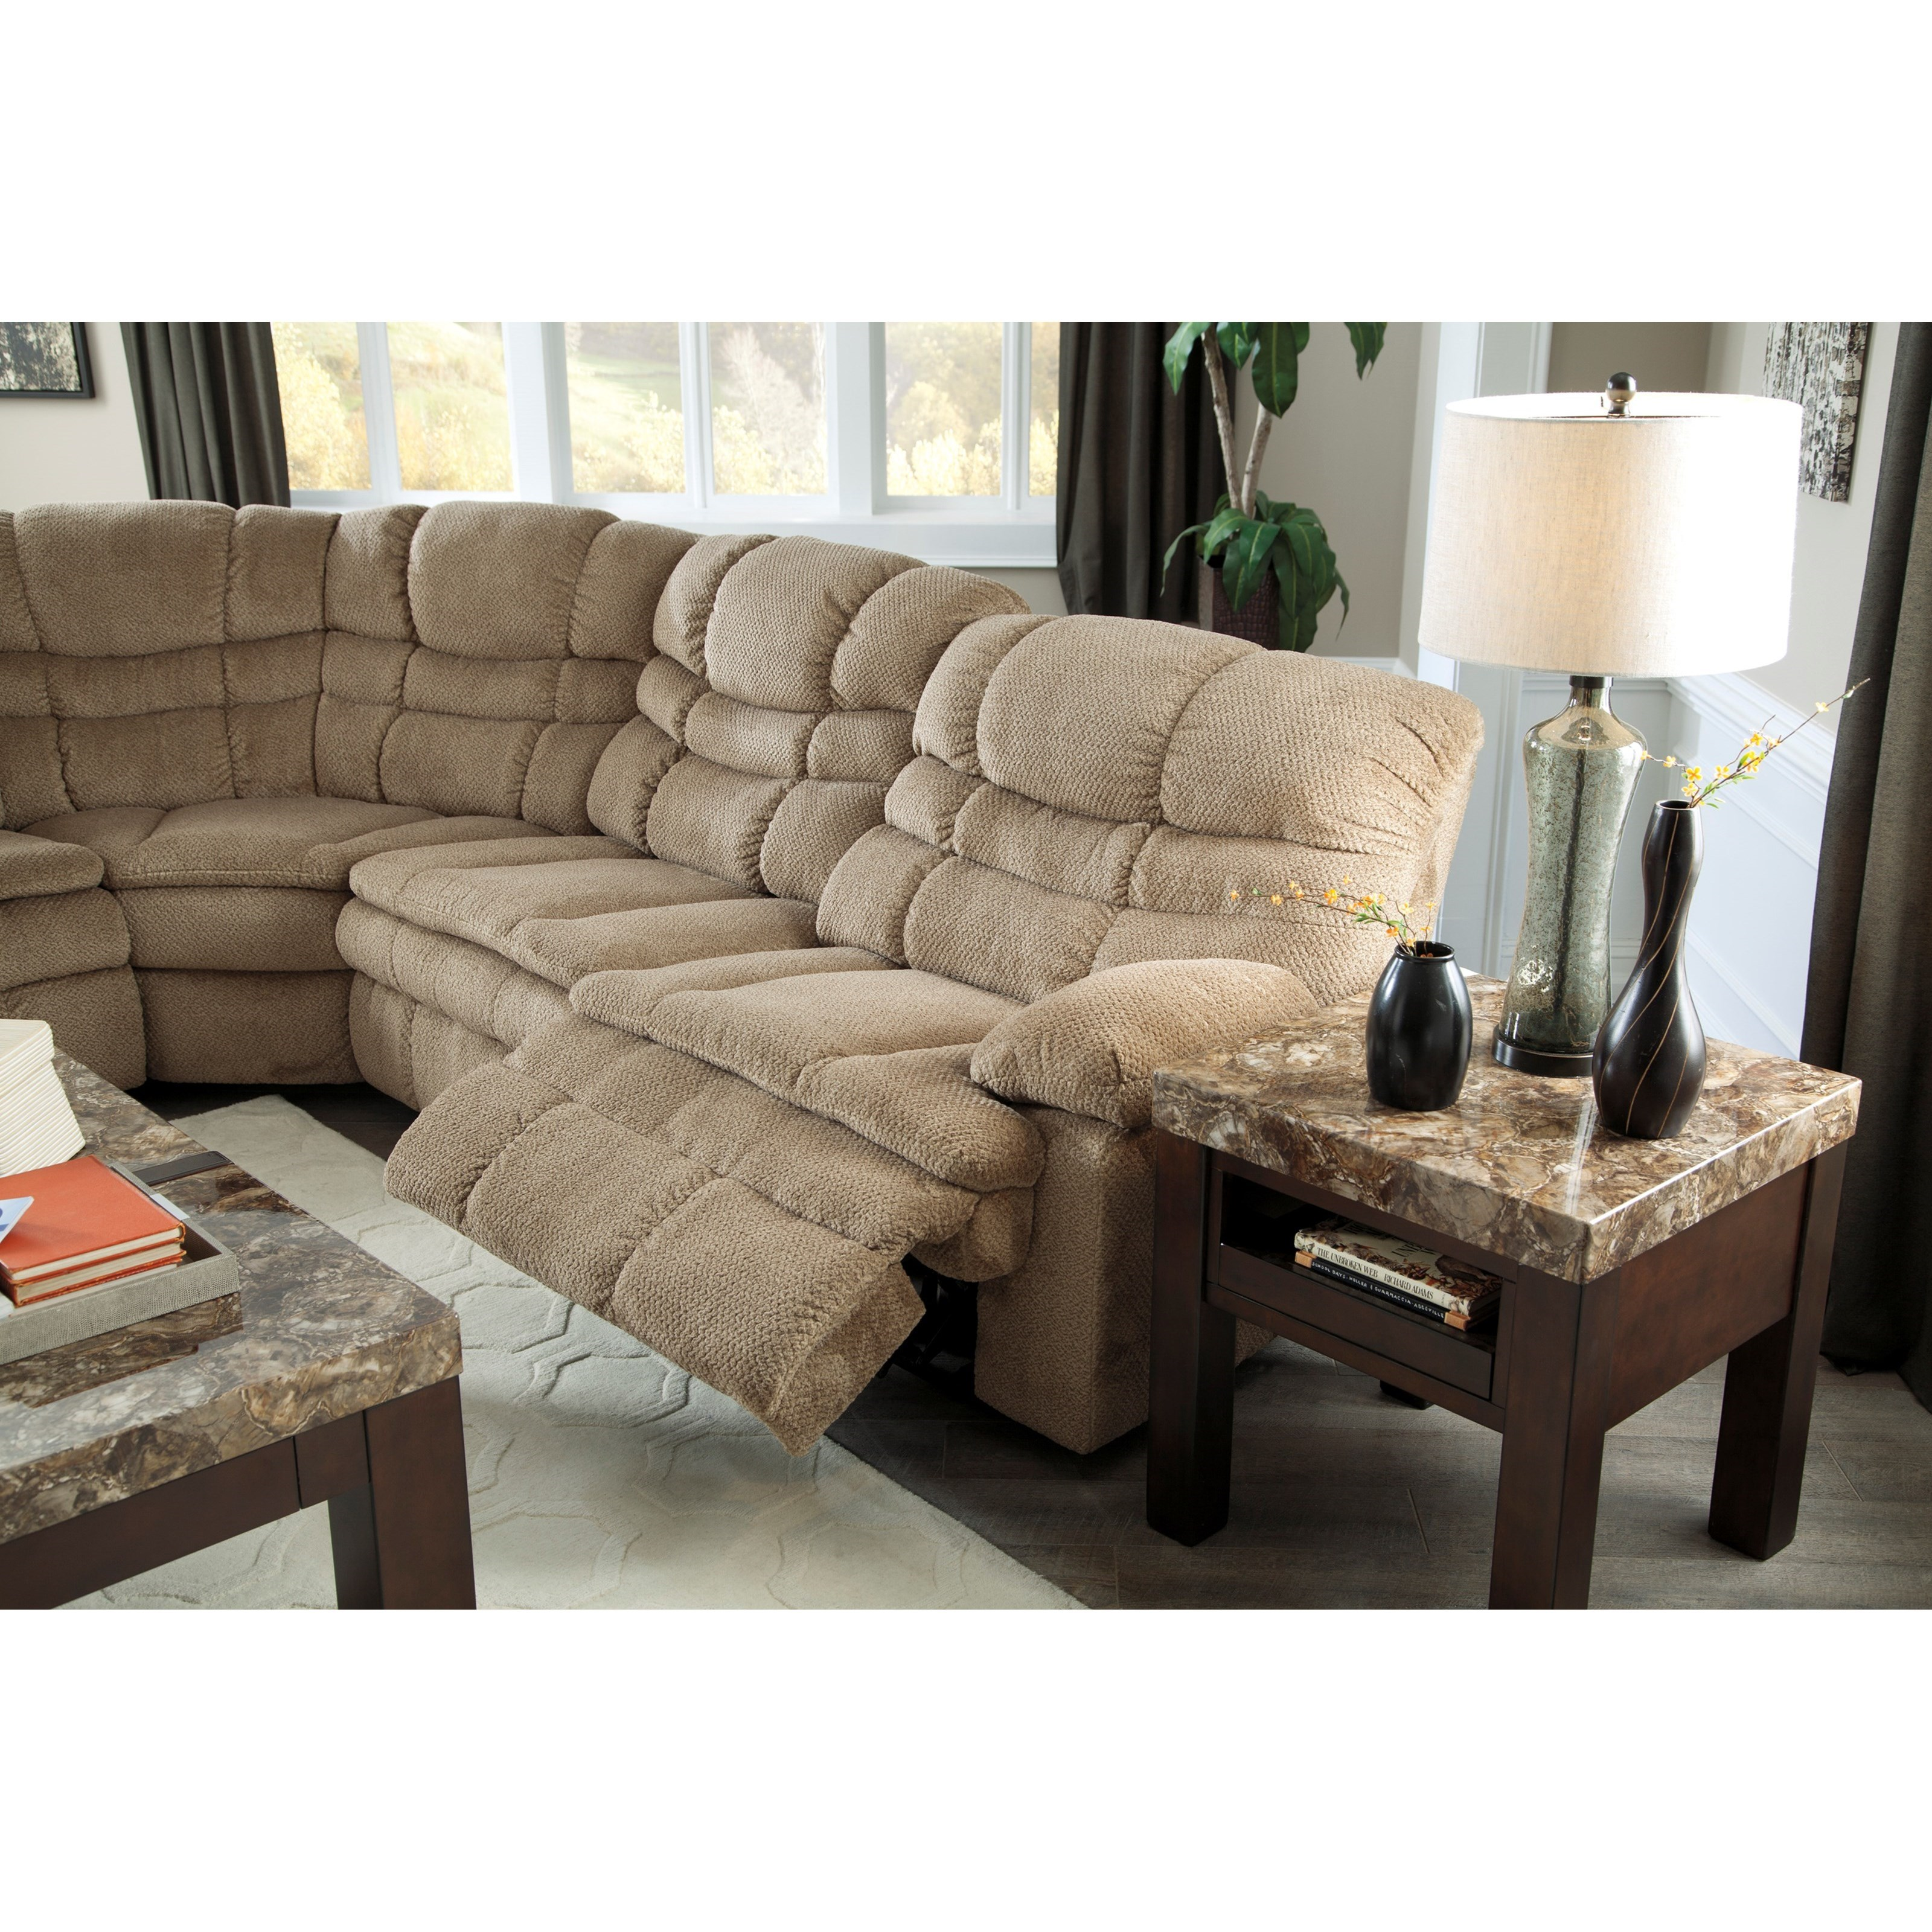 Signature Design by Ashley Zavion 6Pc Power Recl Sectional